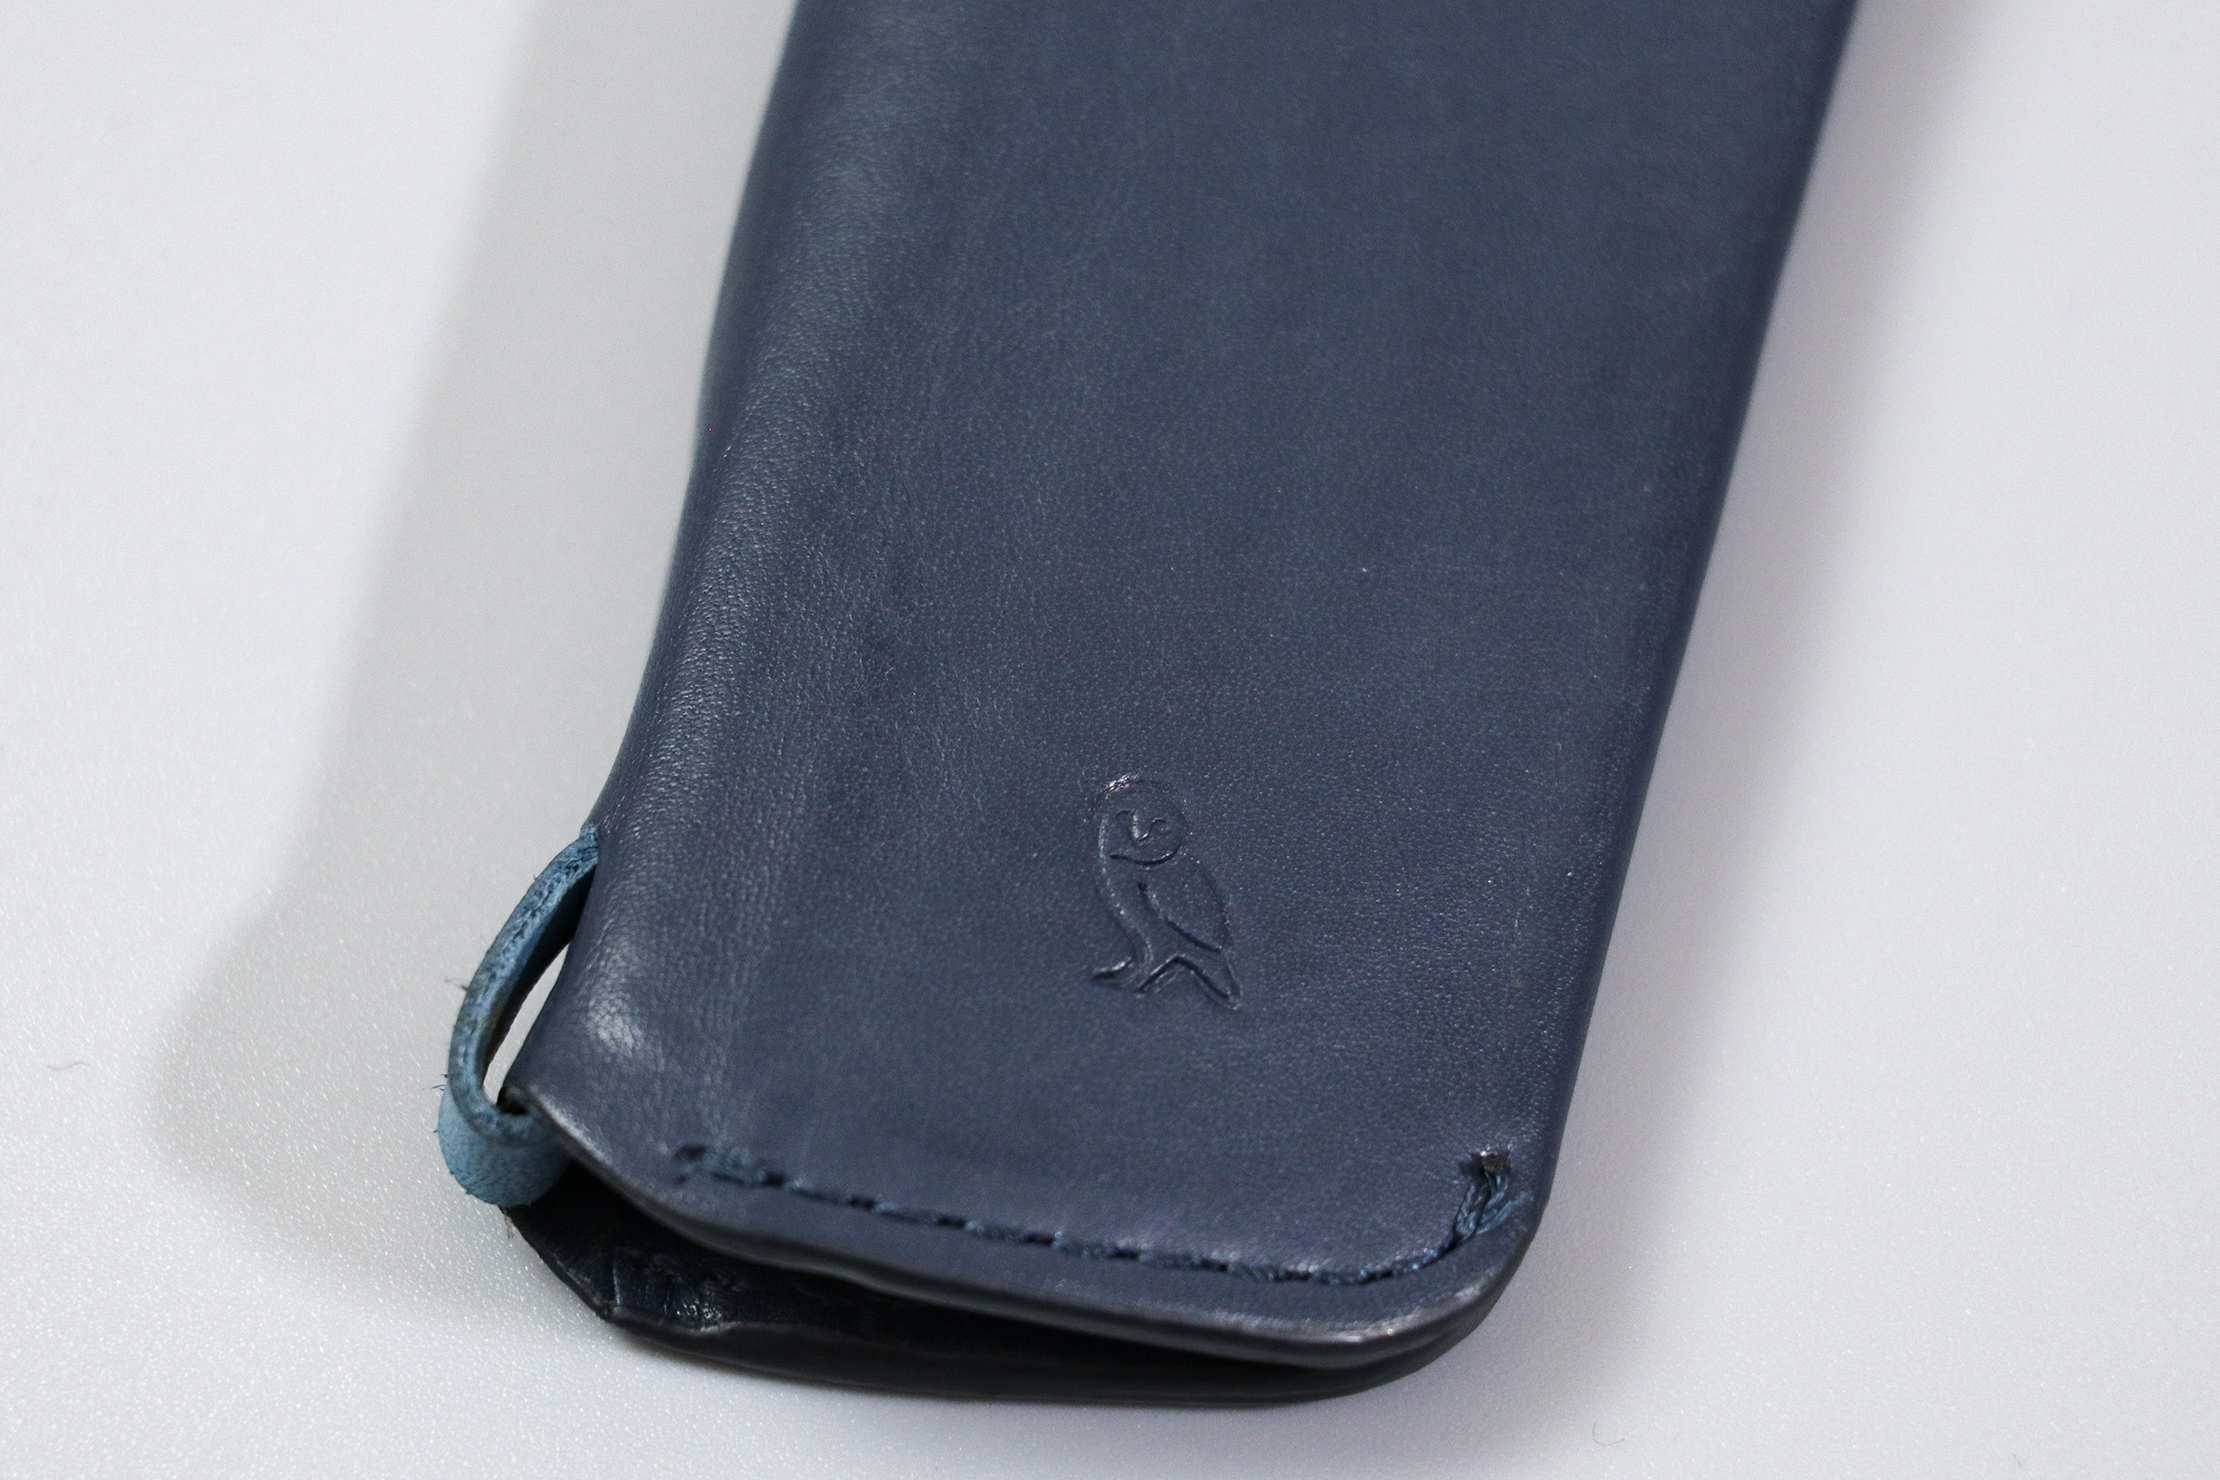 Bellroy Key Cover Plus Leather Material